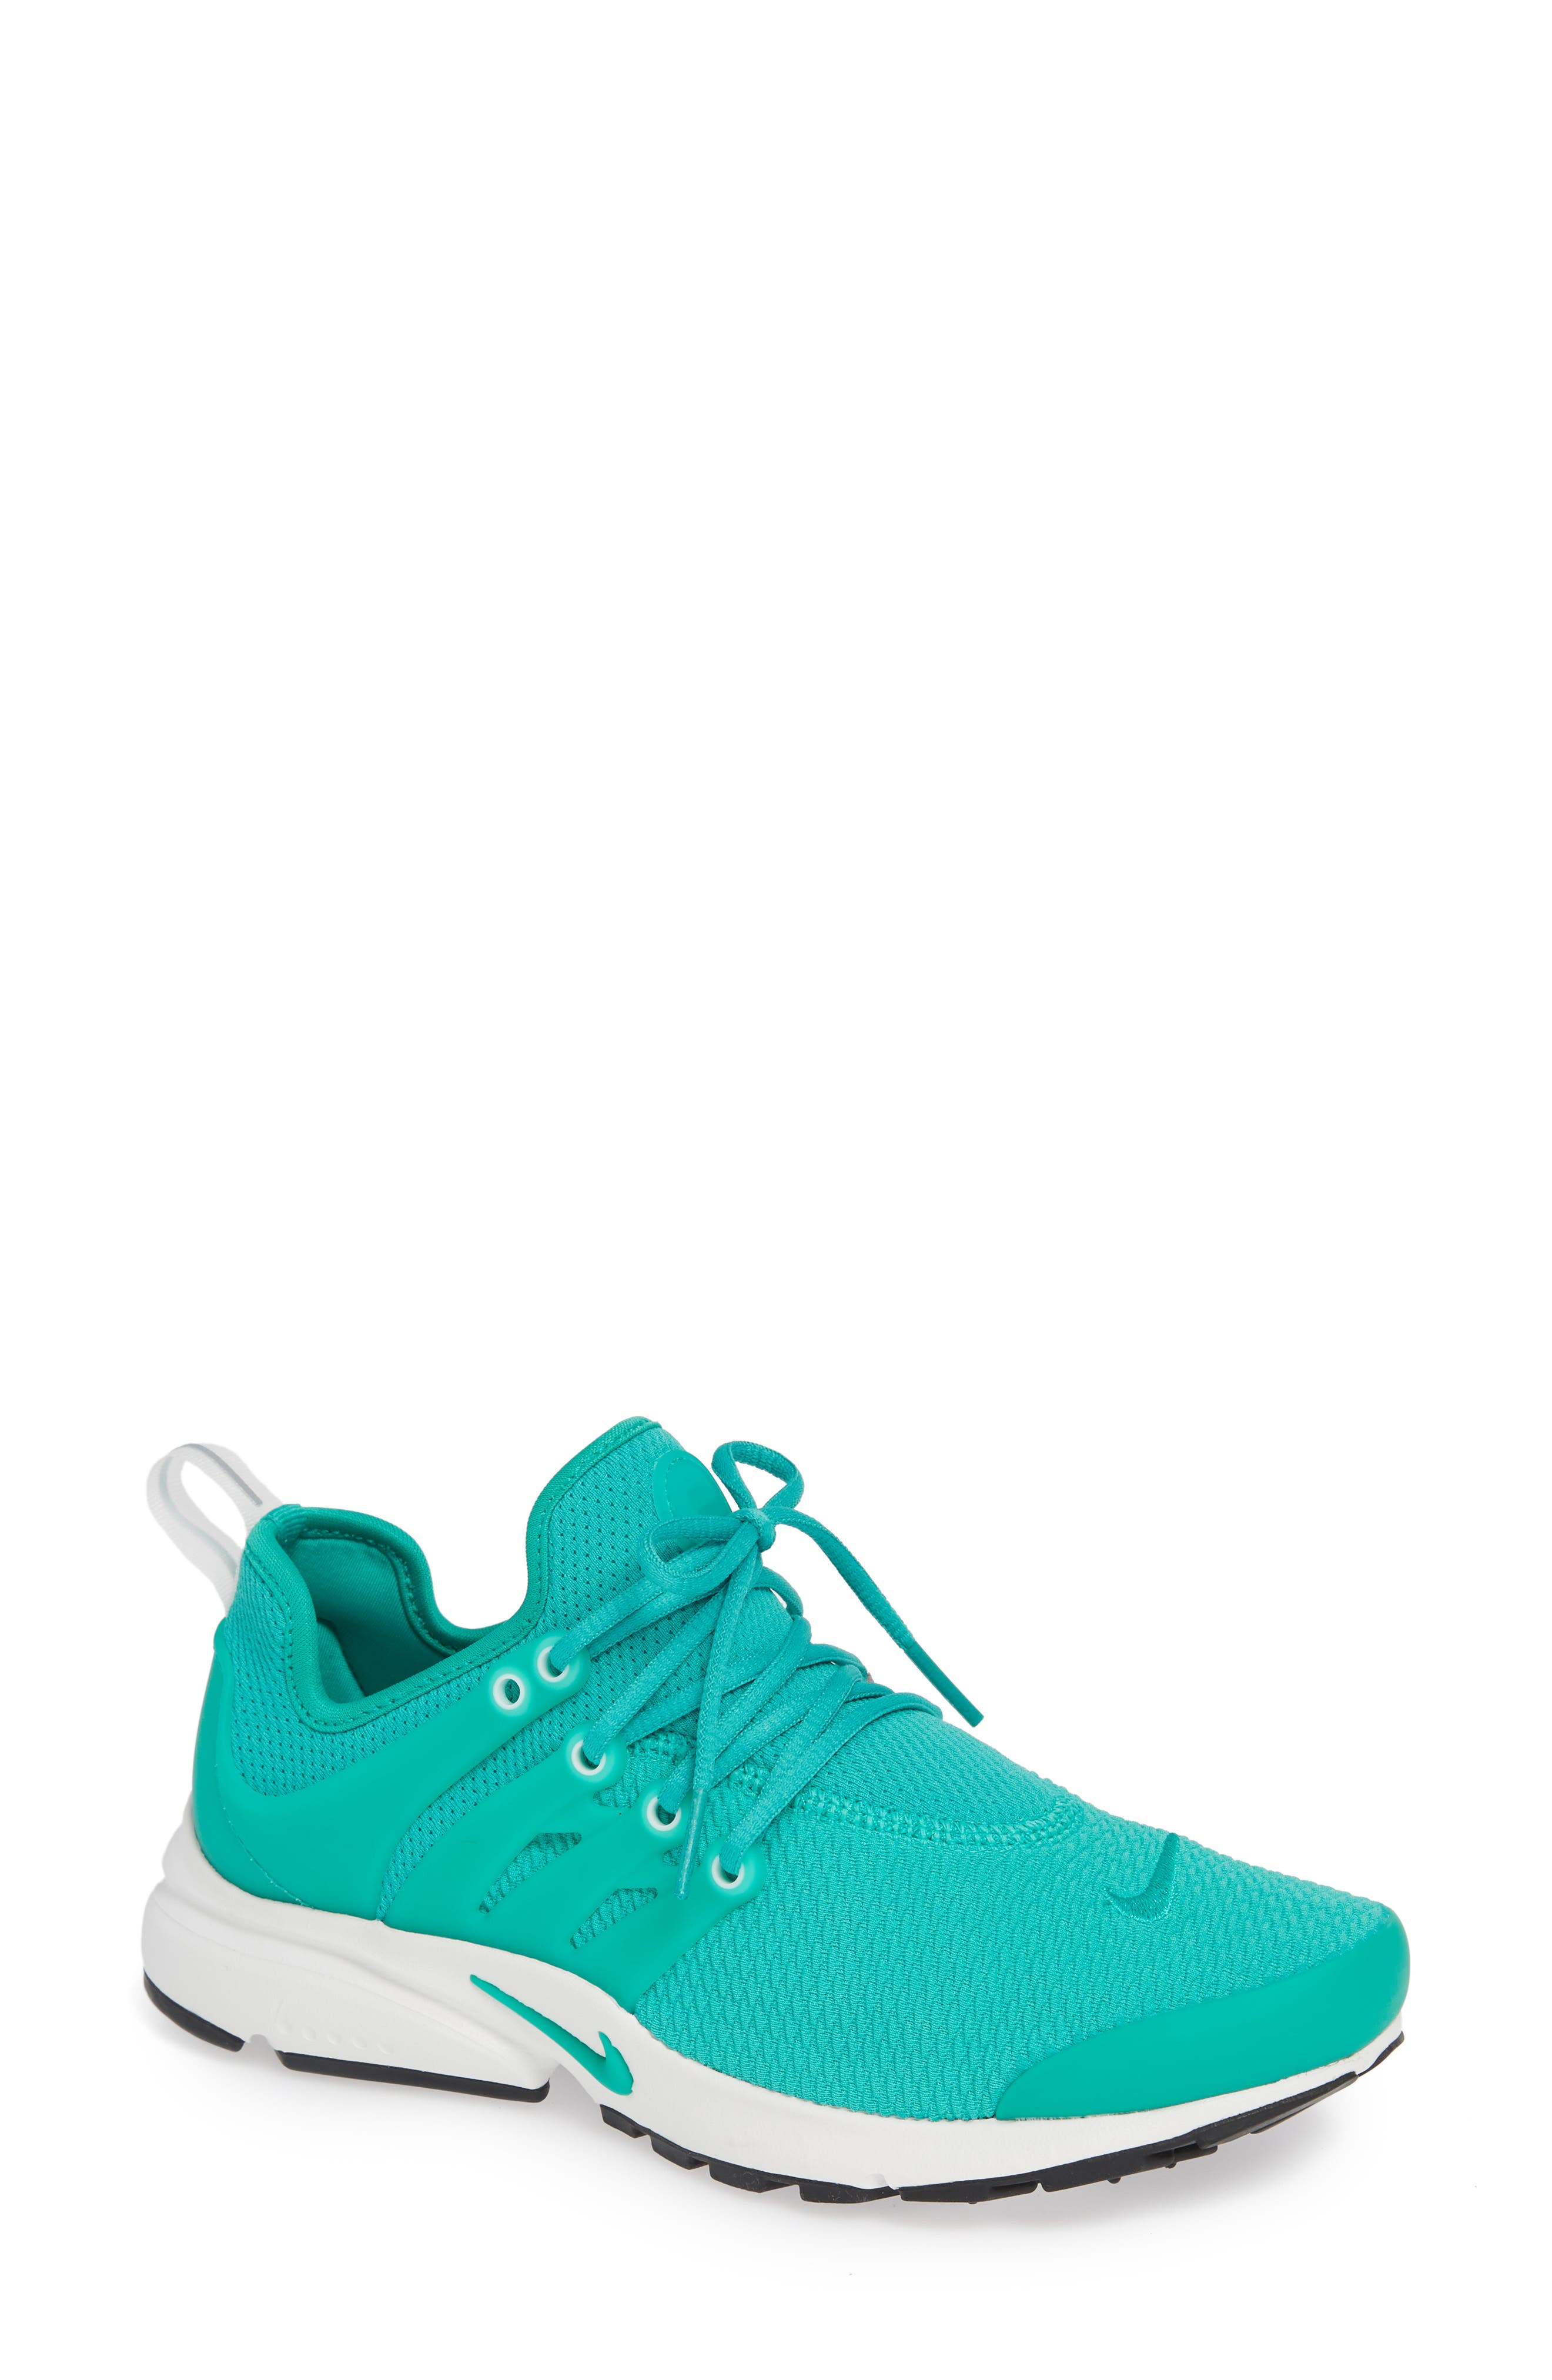 Air Presto Sneaker,                             Main thumbnail 1, color,                             CLEAR EMERALD/ SUMMIT WHITE